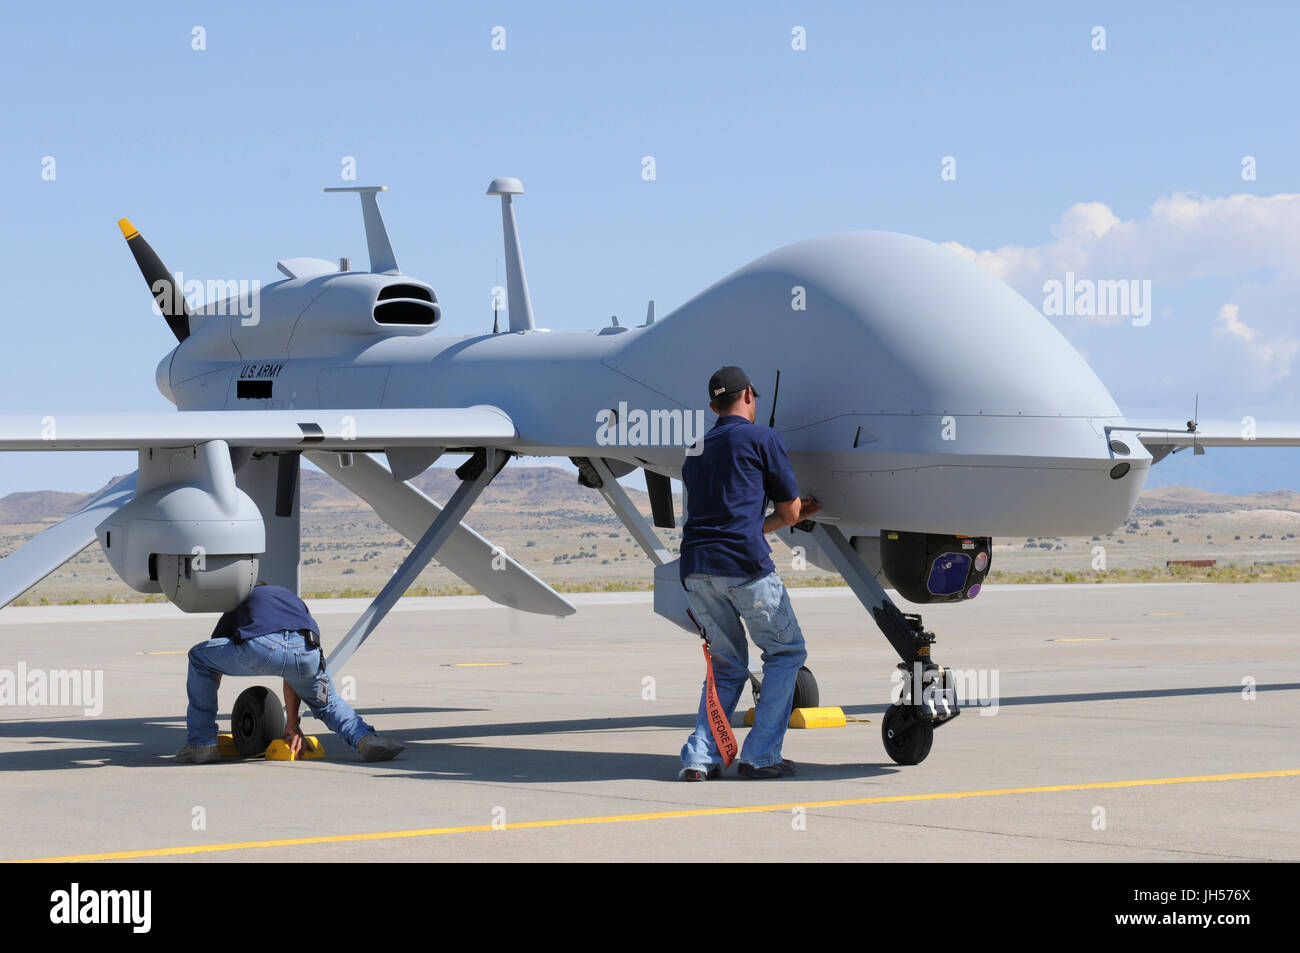 reaper drone rc with Stock Photo Us Military Drones And Unmanned Aerial Vehicles Uavs 148247538 on Watch together with Stock Photo Us Military Drones And Unmanned Aerial Vehicles Uavs 148247538 together with Uavs Rc Nasa together with Drone Training besides Saints Row 14822784.